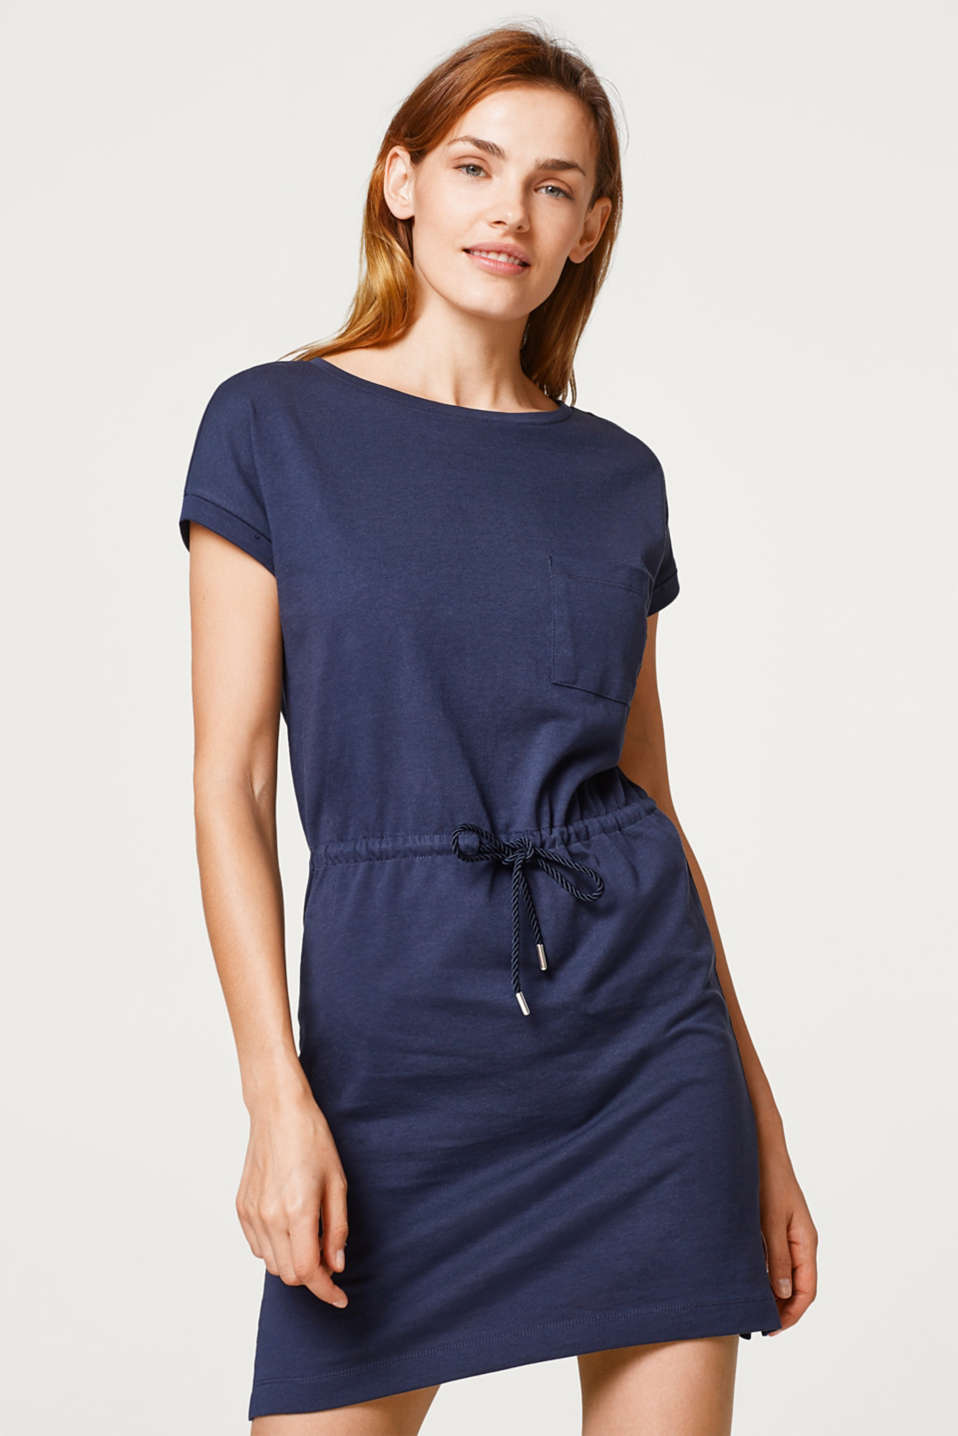 Esprit - Jersey dress with a breast pocket and a drawstring waist